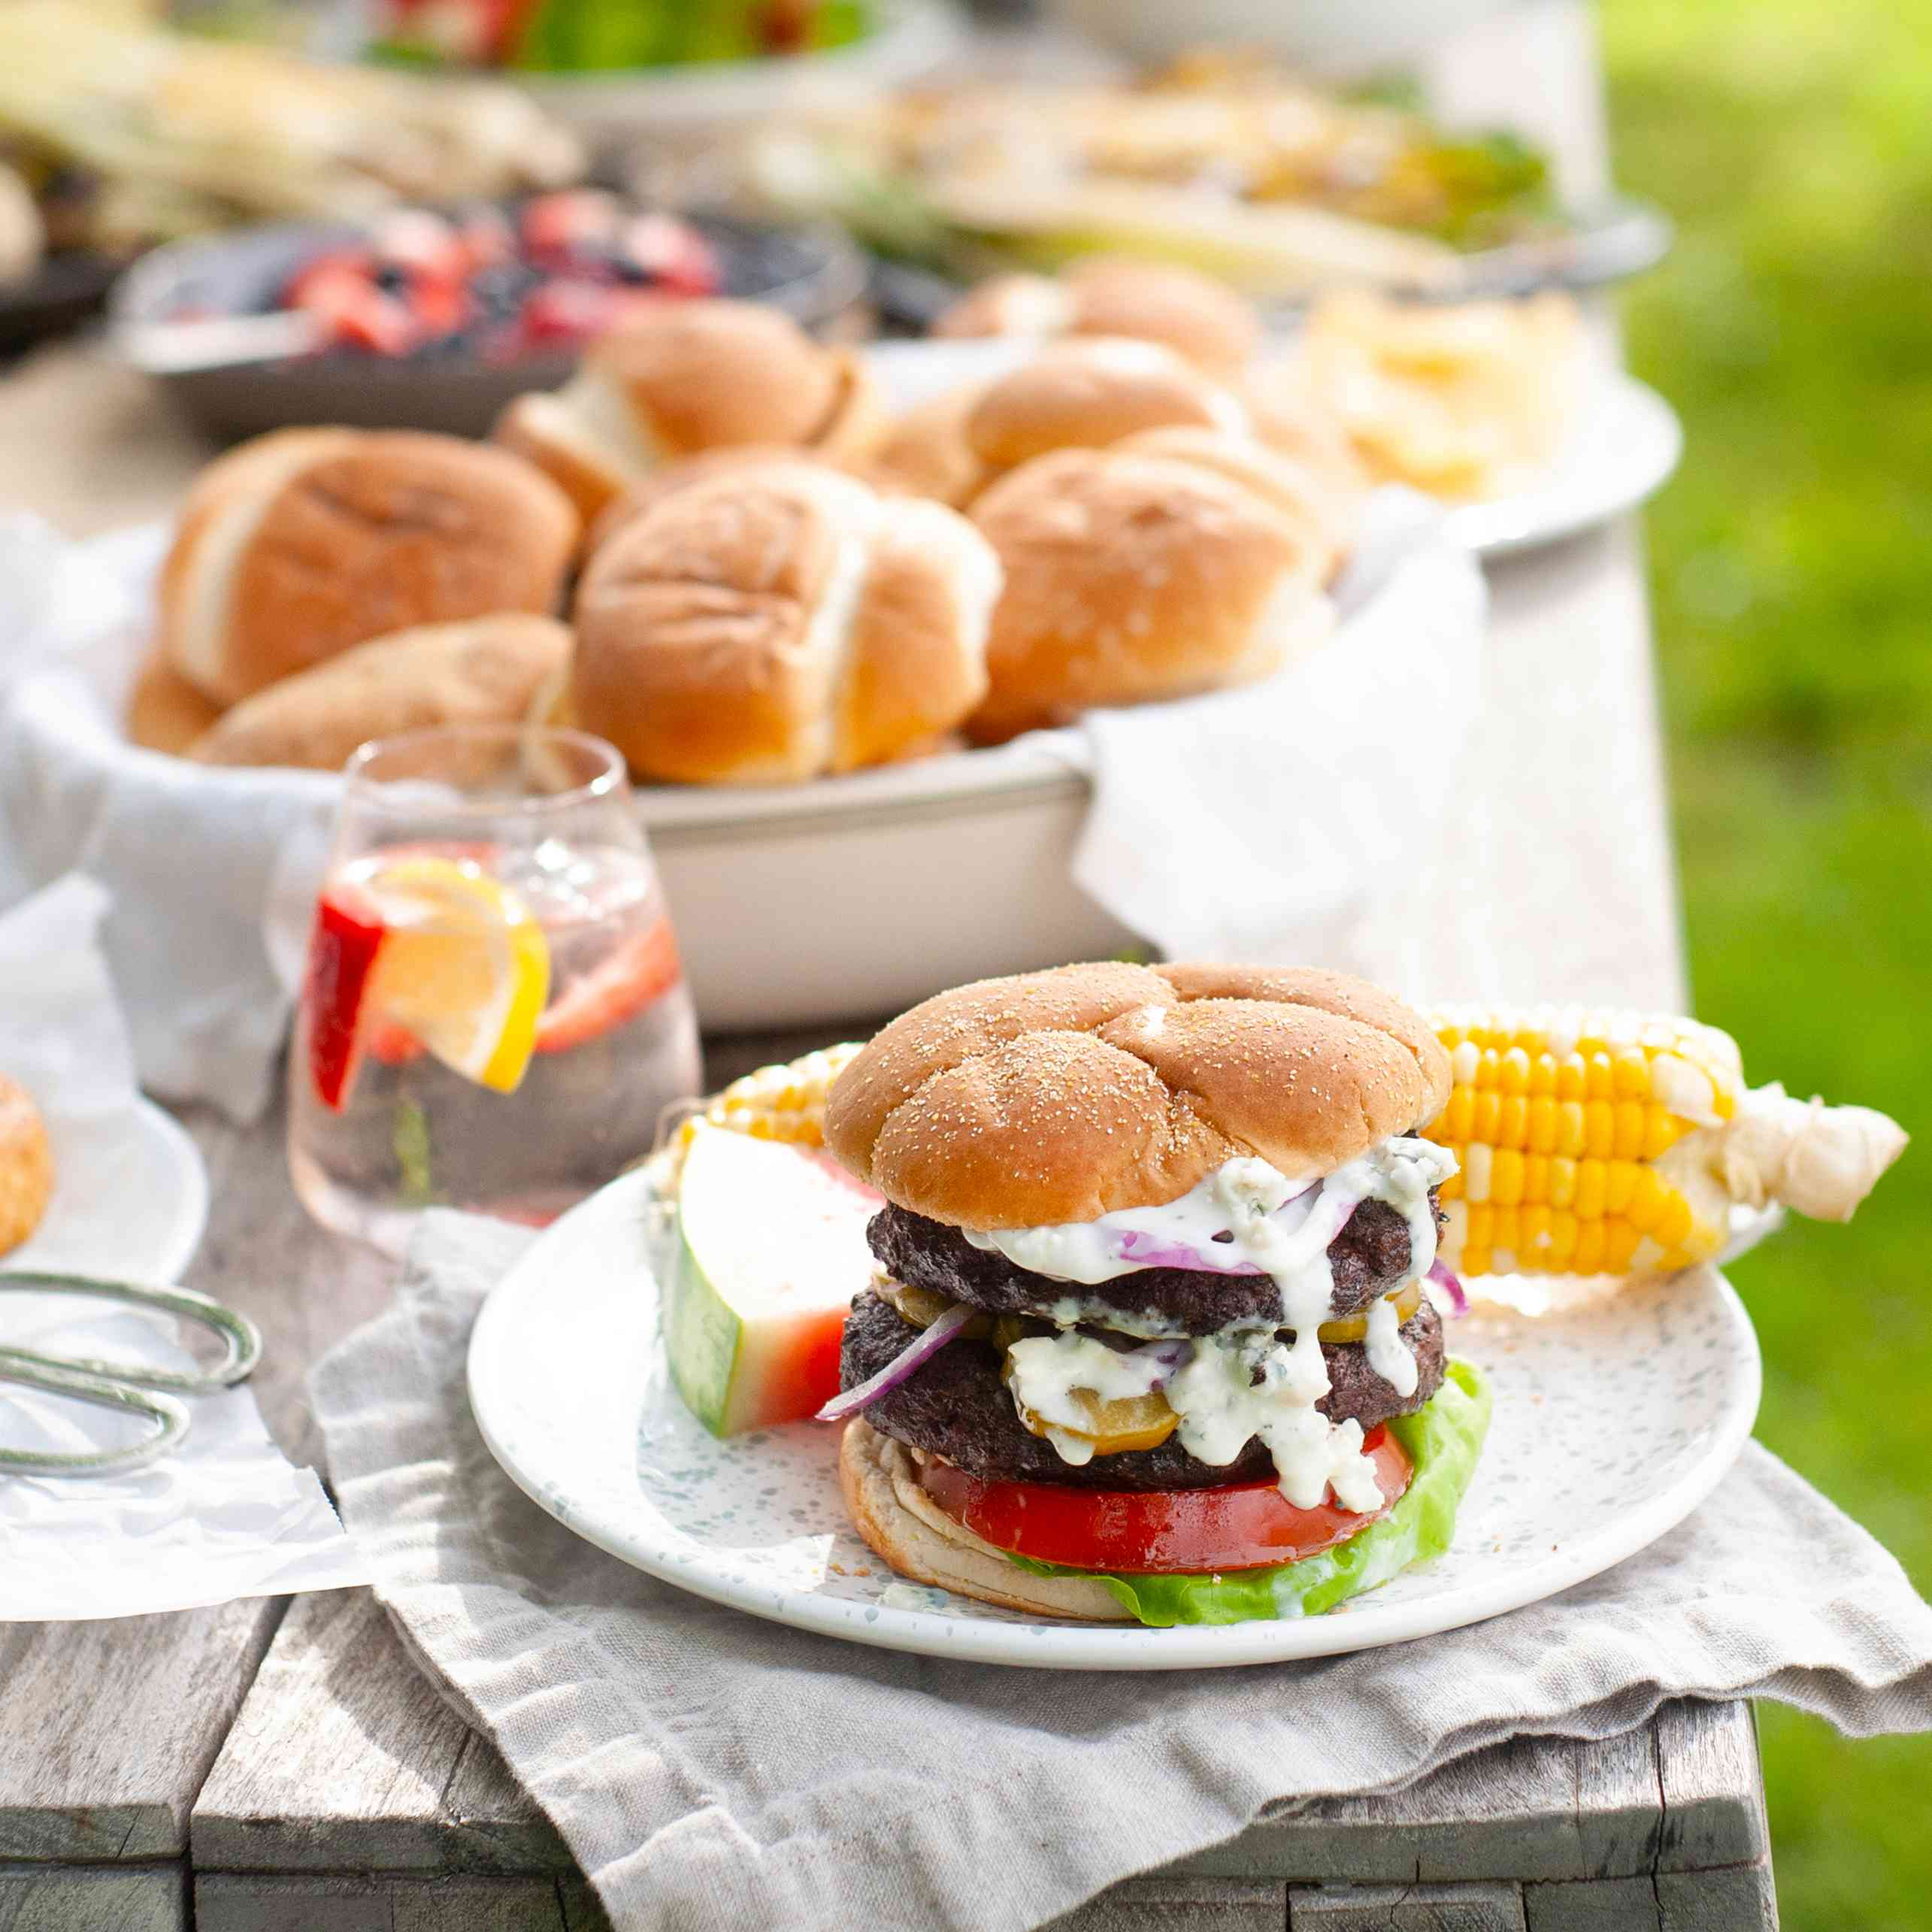 A picnic table filled with buns, drinks, watermelon. A plate in the front of the table has a hamburger on it, with blue cheese sauce dripping down the front. An ear of corn with a slice of watermelon is also on the plate.